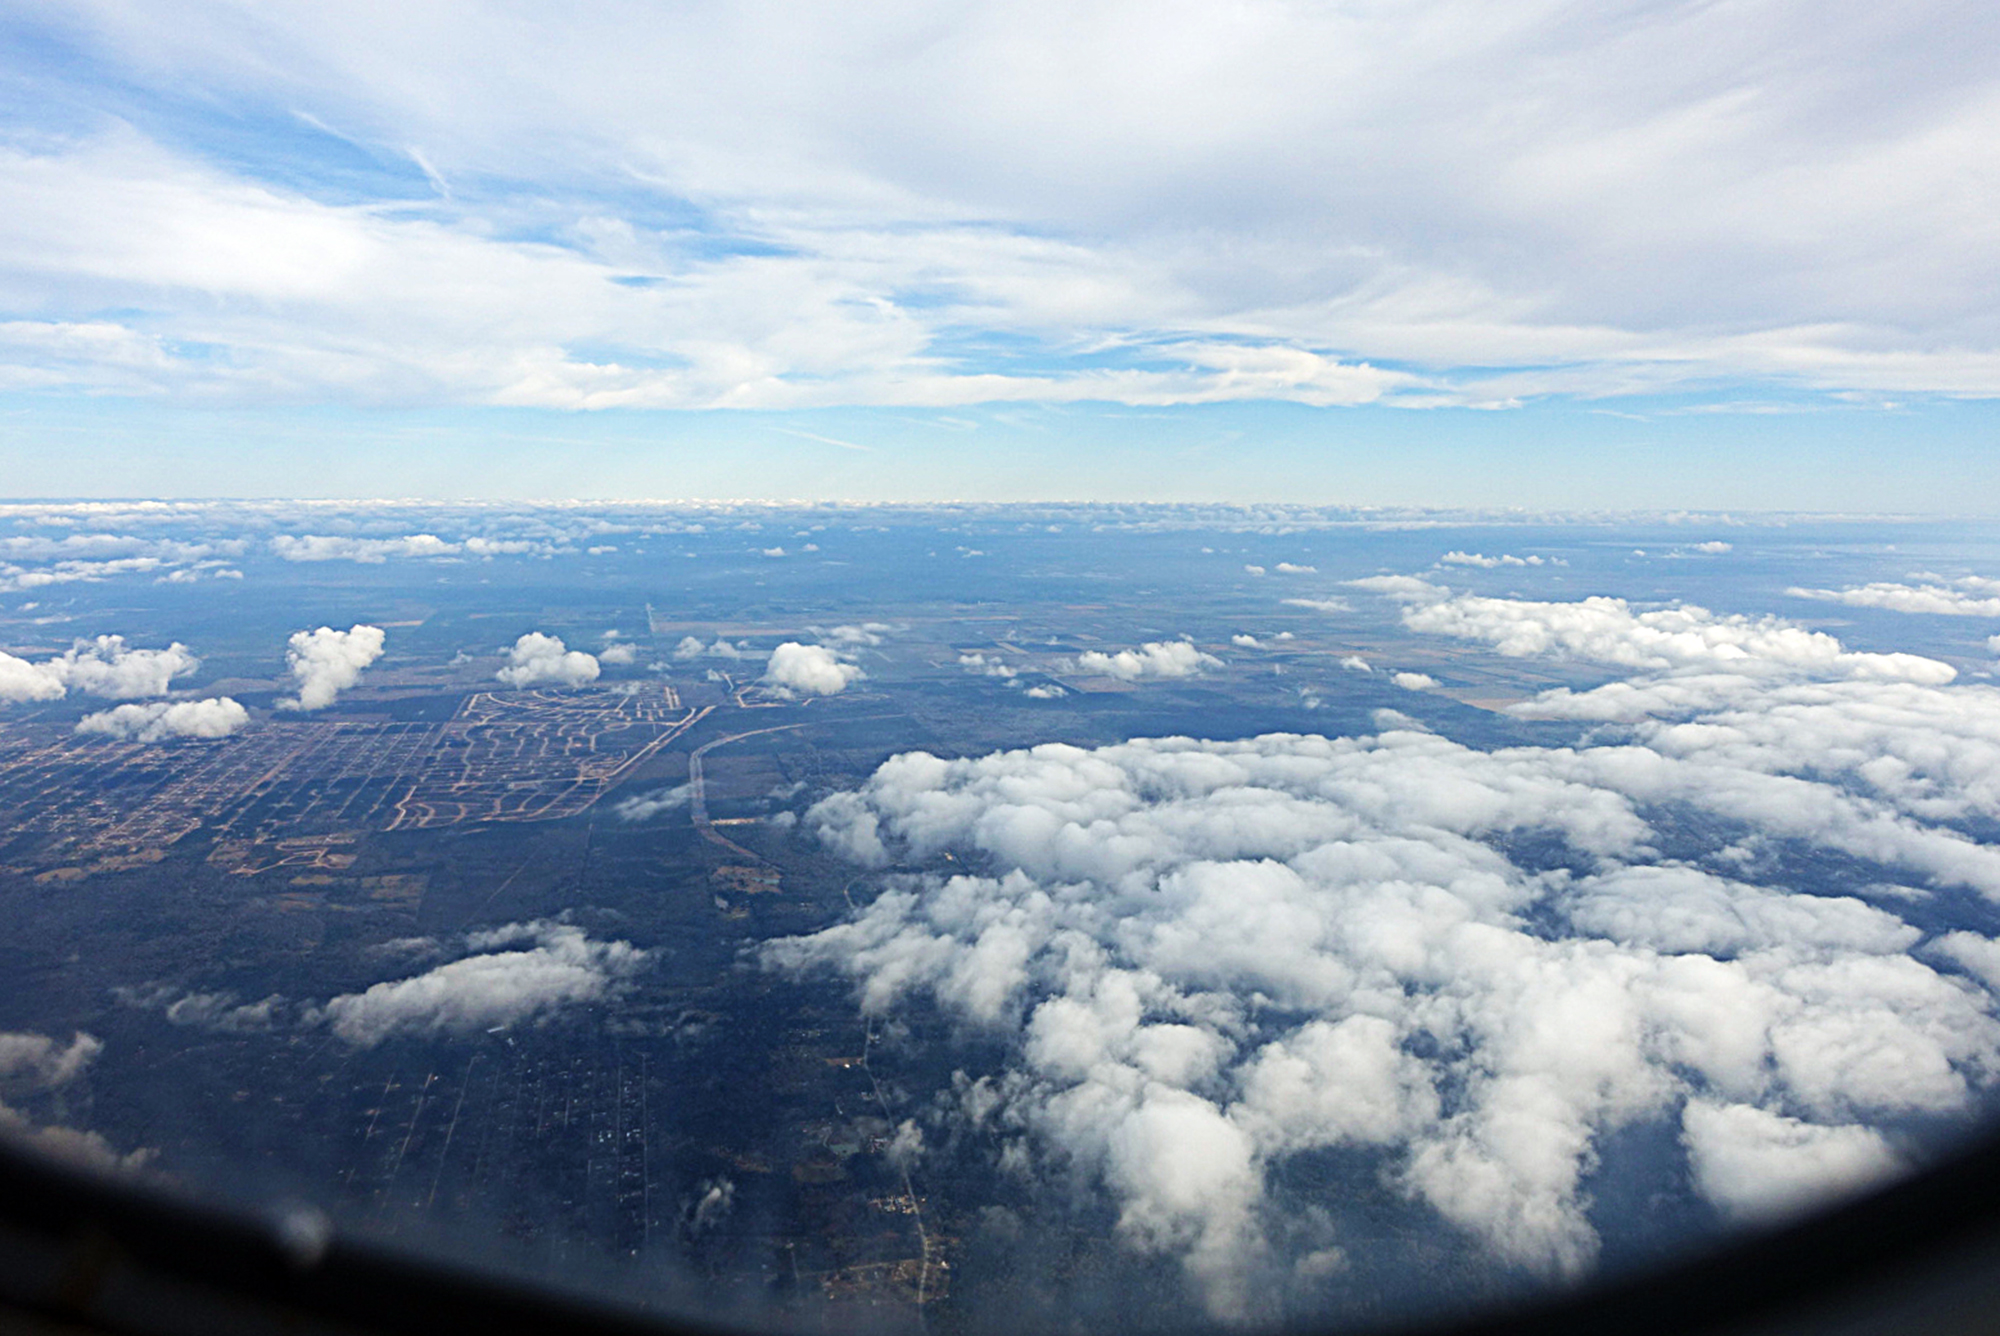 Somewhere between Houston and New York City, Tuesday, January 6th, 2019.